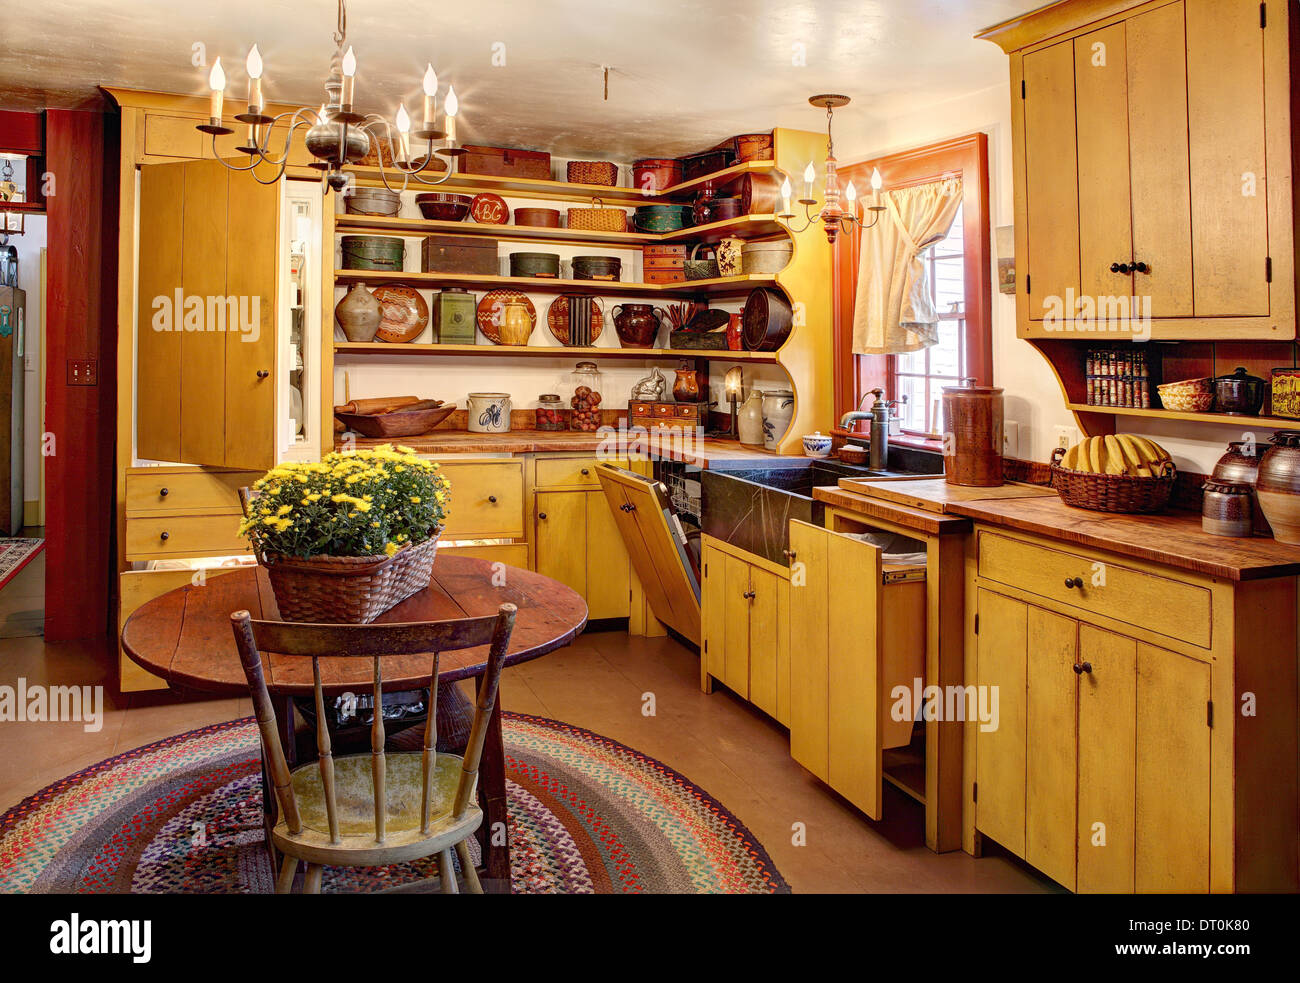 An interior vies of the kitchen in an authentic primitive colonial reproduction home. - Stock Image